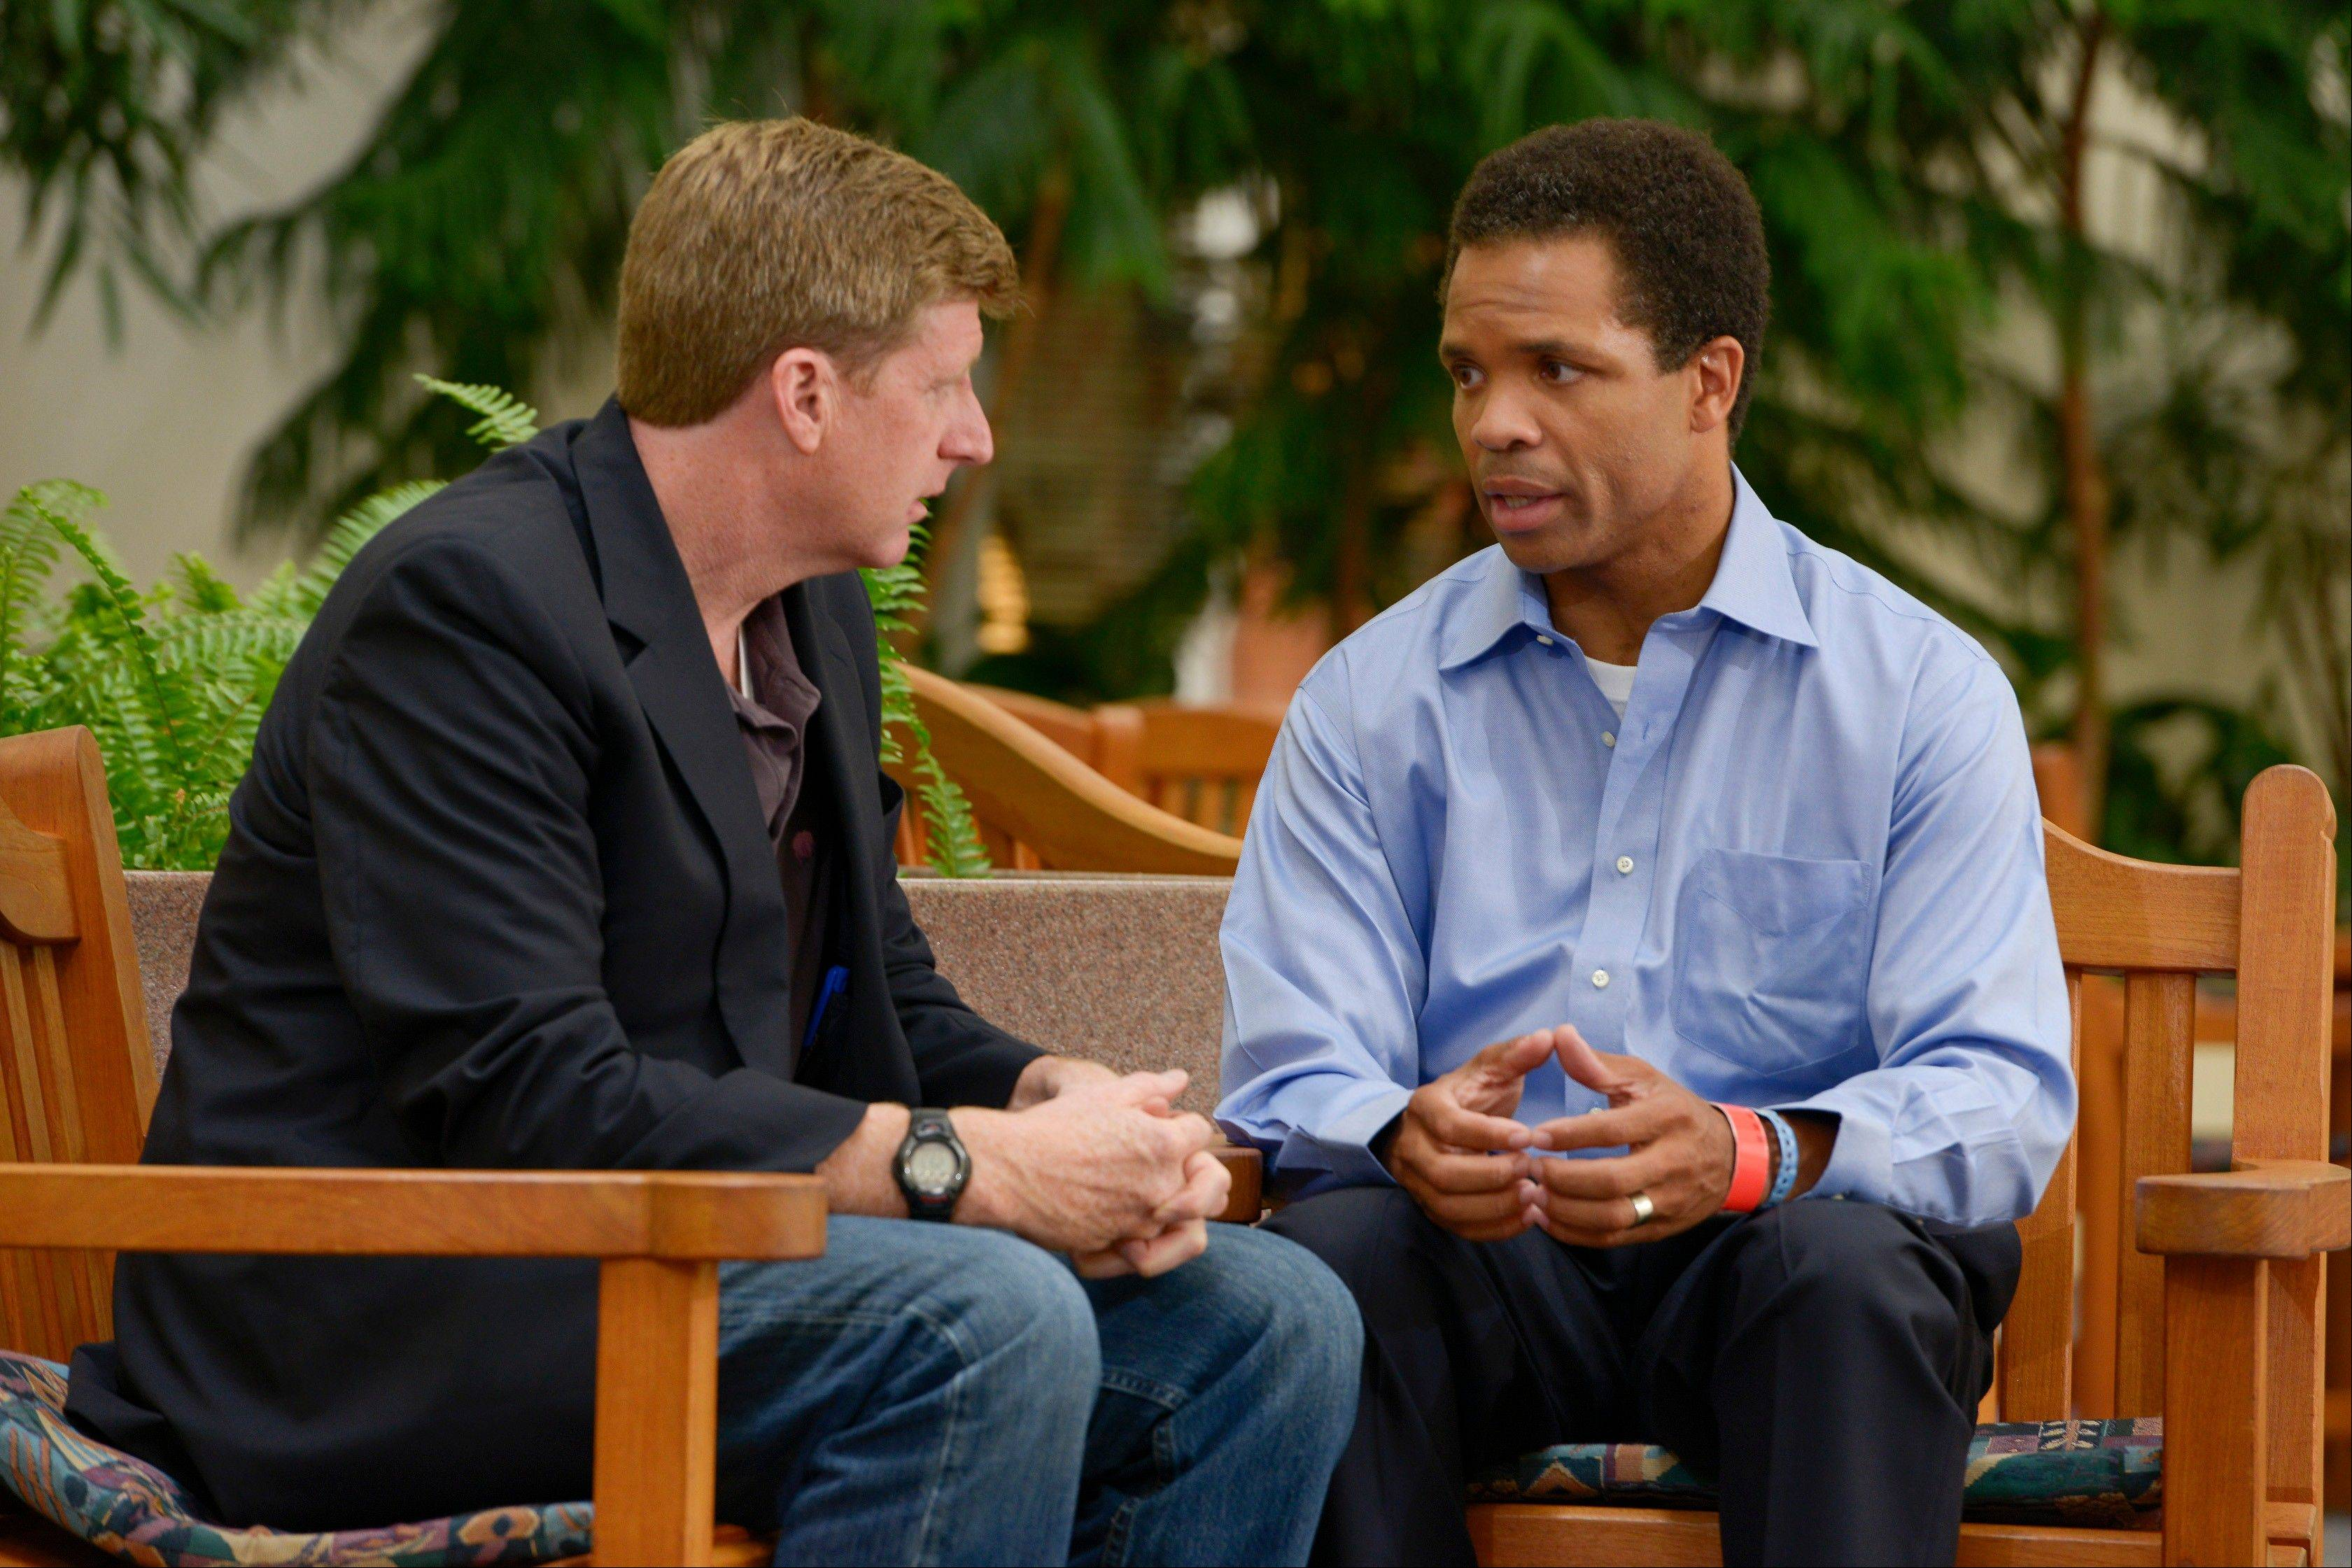 Former U.S. Rep. Patrick J. Kennedy meets with Congressman Jesse Jackson Jr. at the Mayo Clinic in Rochester, Minn, on Thursday.